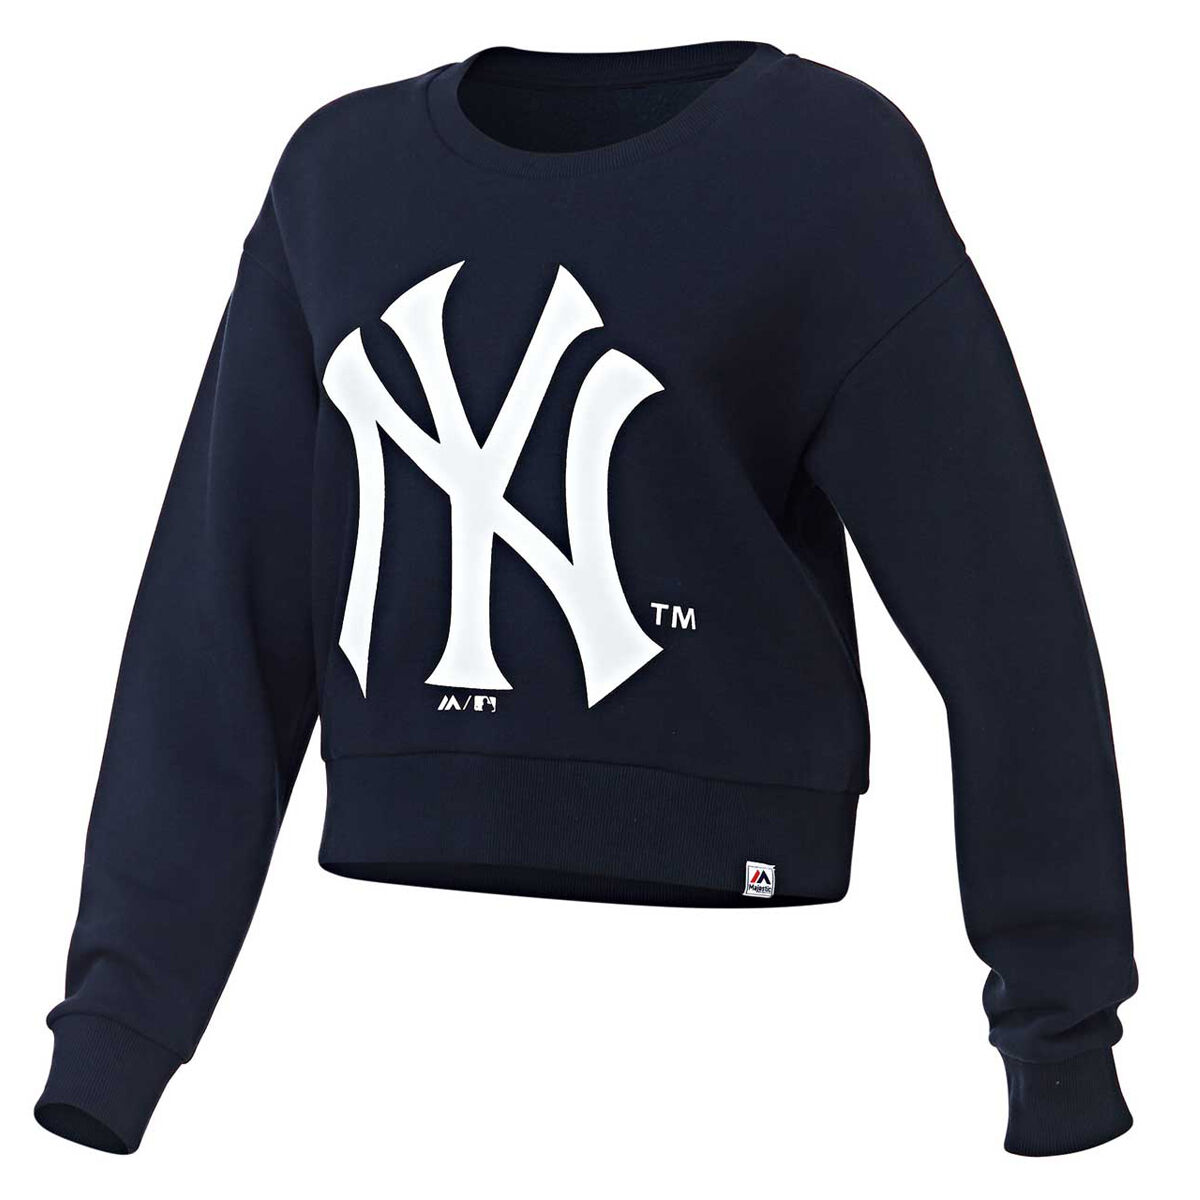 Women's New York Yankees Nike NavyWhite Track Jacket